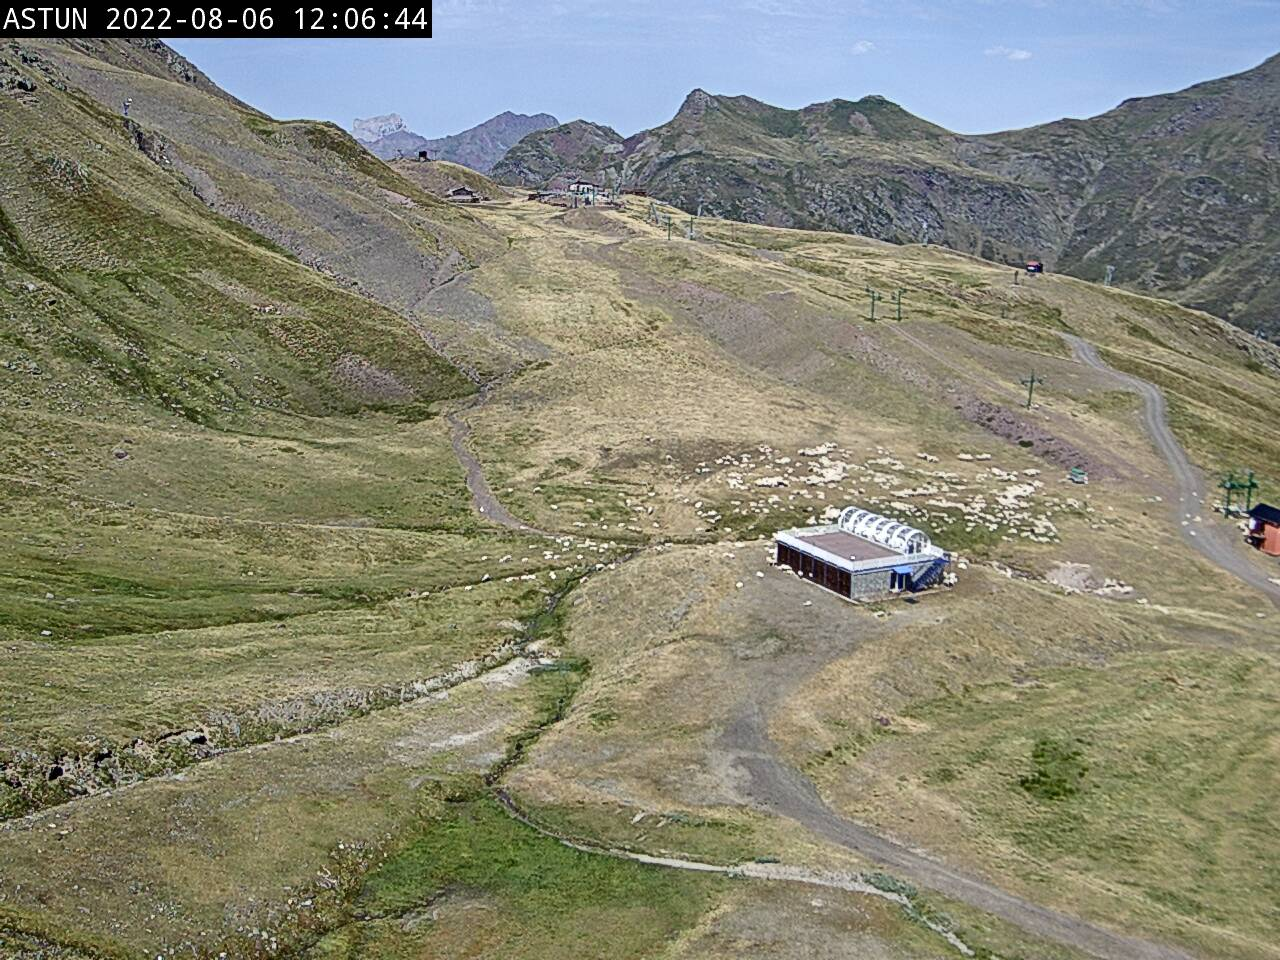 Webcam de Prado Blanco